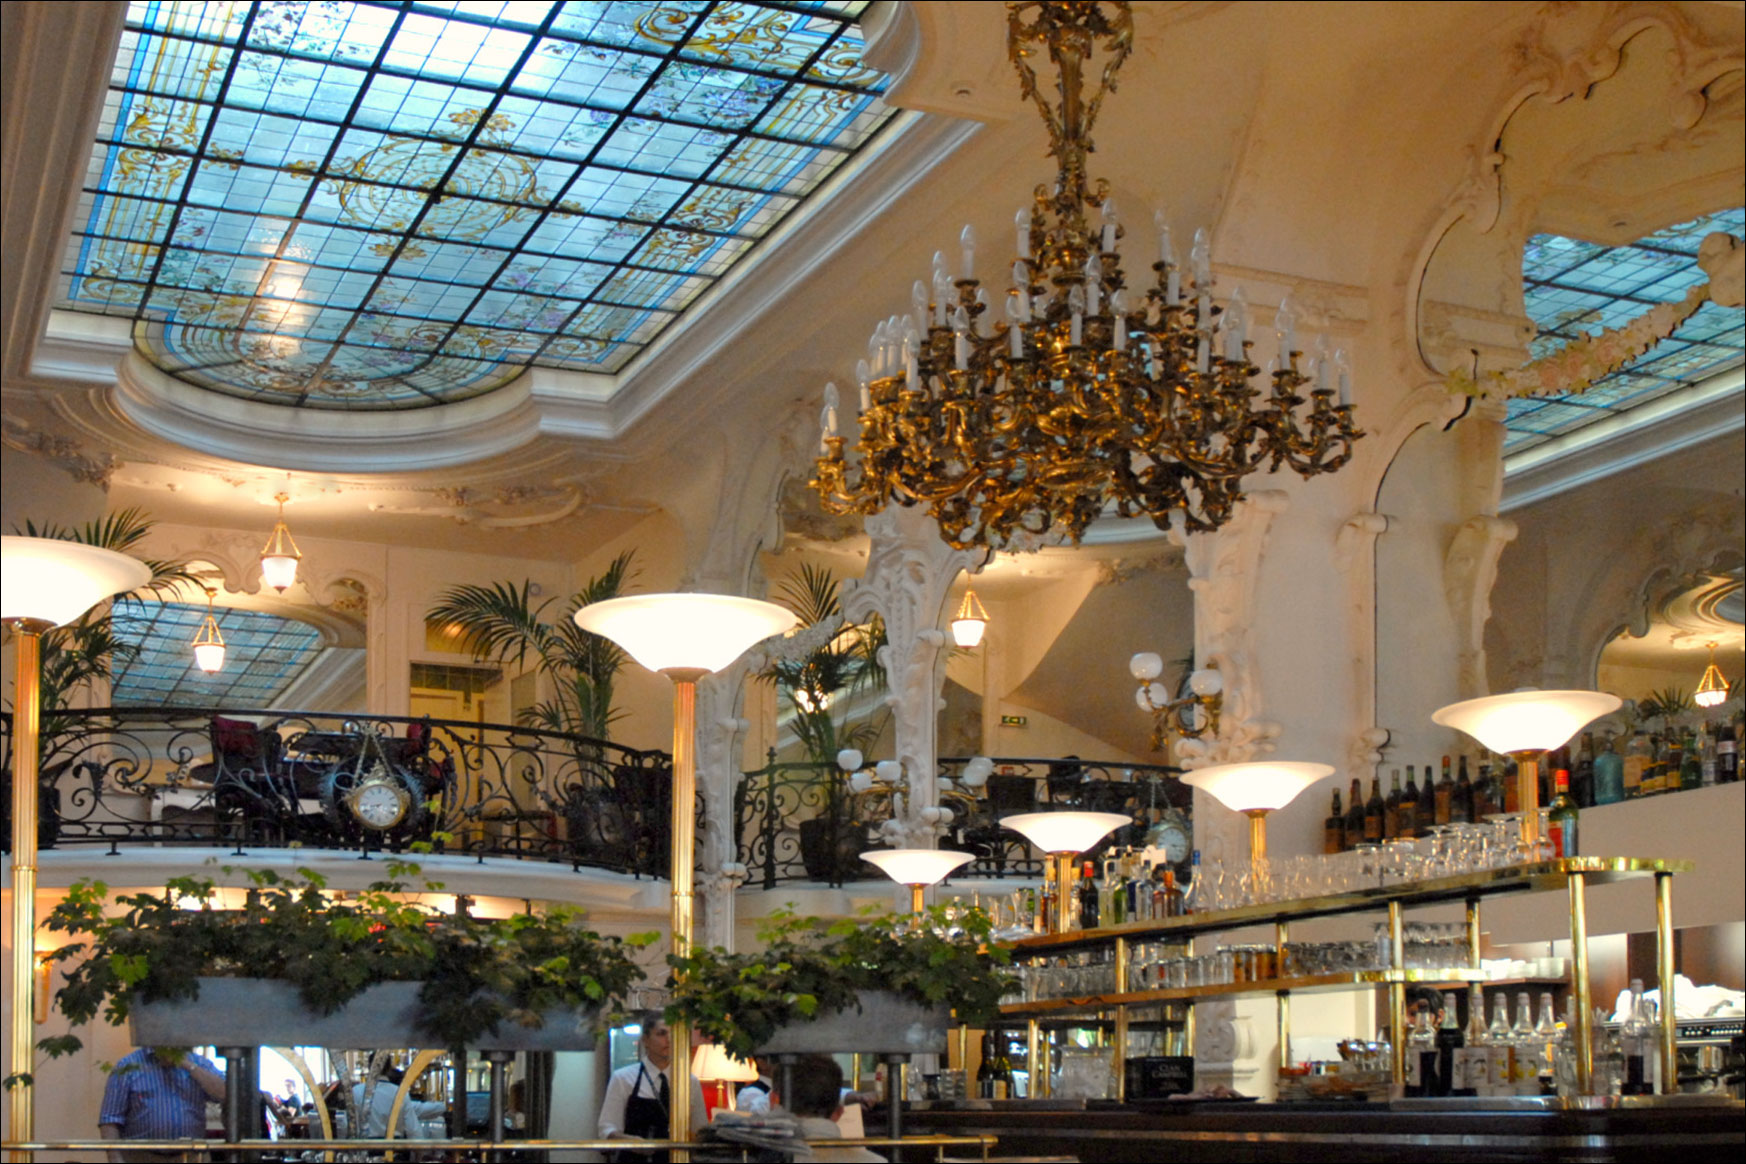 Le Grand Cafe Moulins